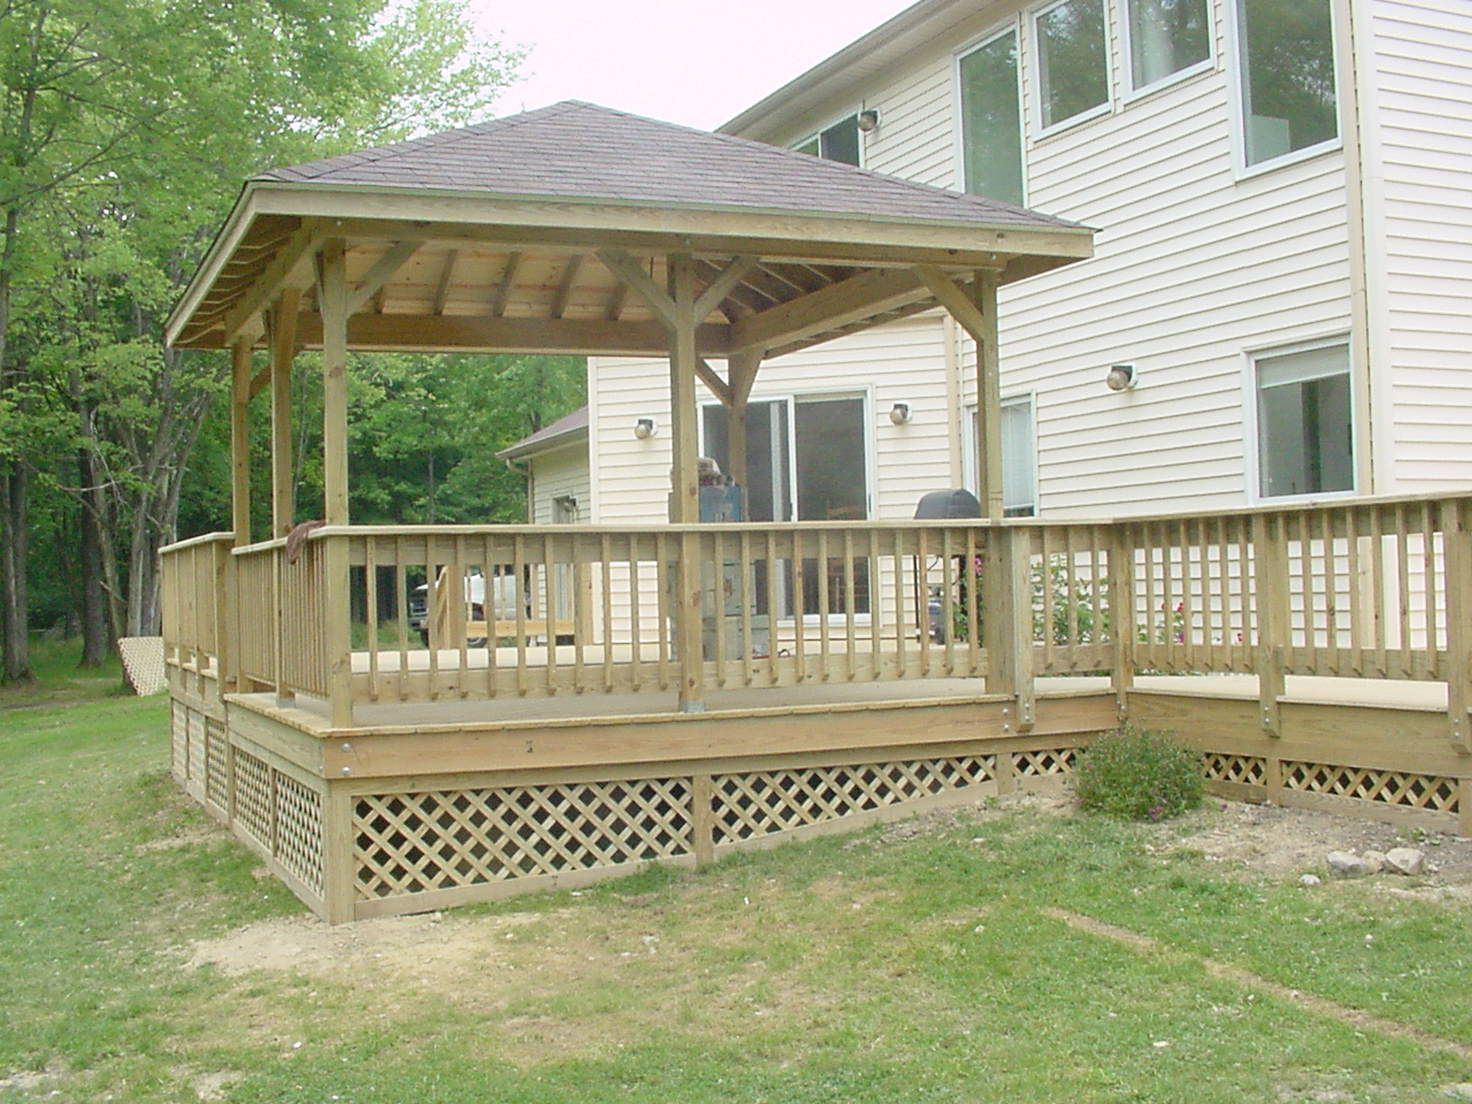 Building Above Ground Pool Deck 12 X12 Square Pavilion Roof Replace Old Decking Railings And Railings Outdoor Pergola Wood Deck Railing